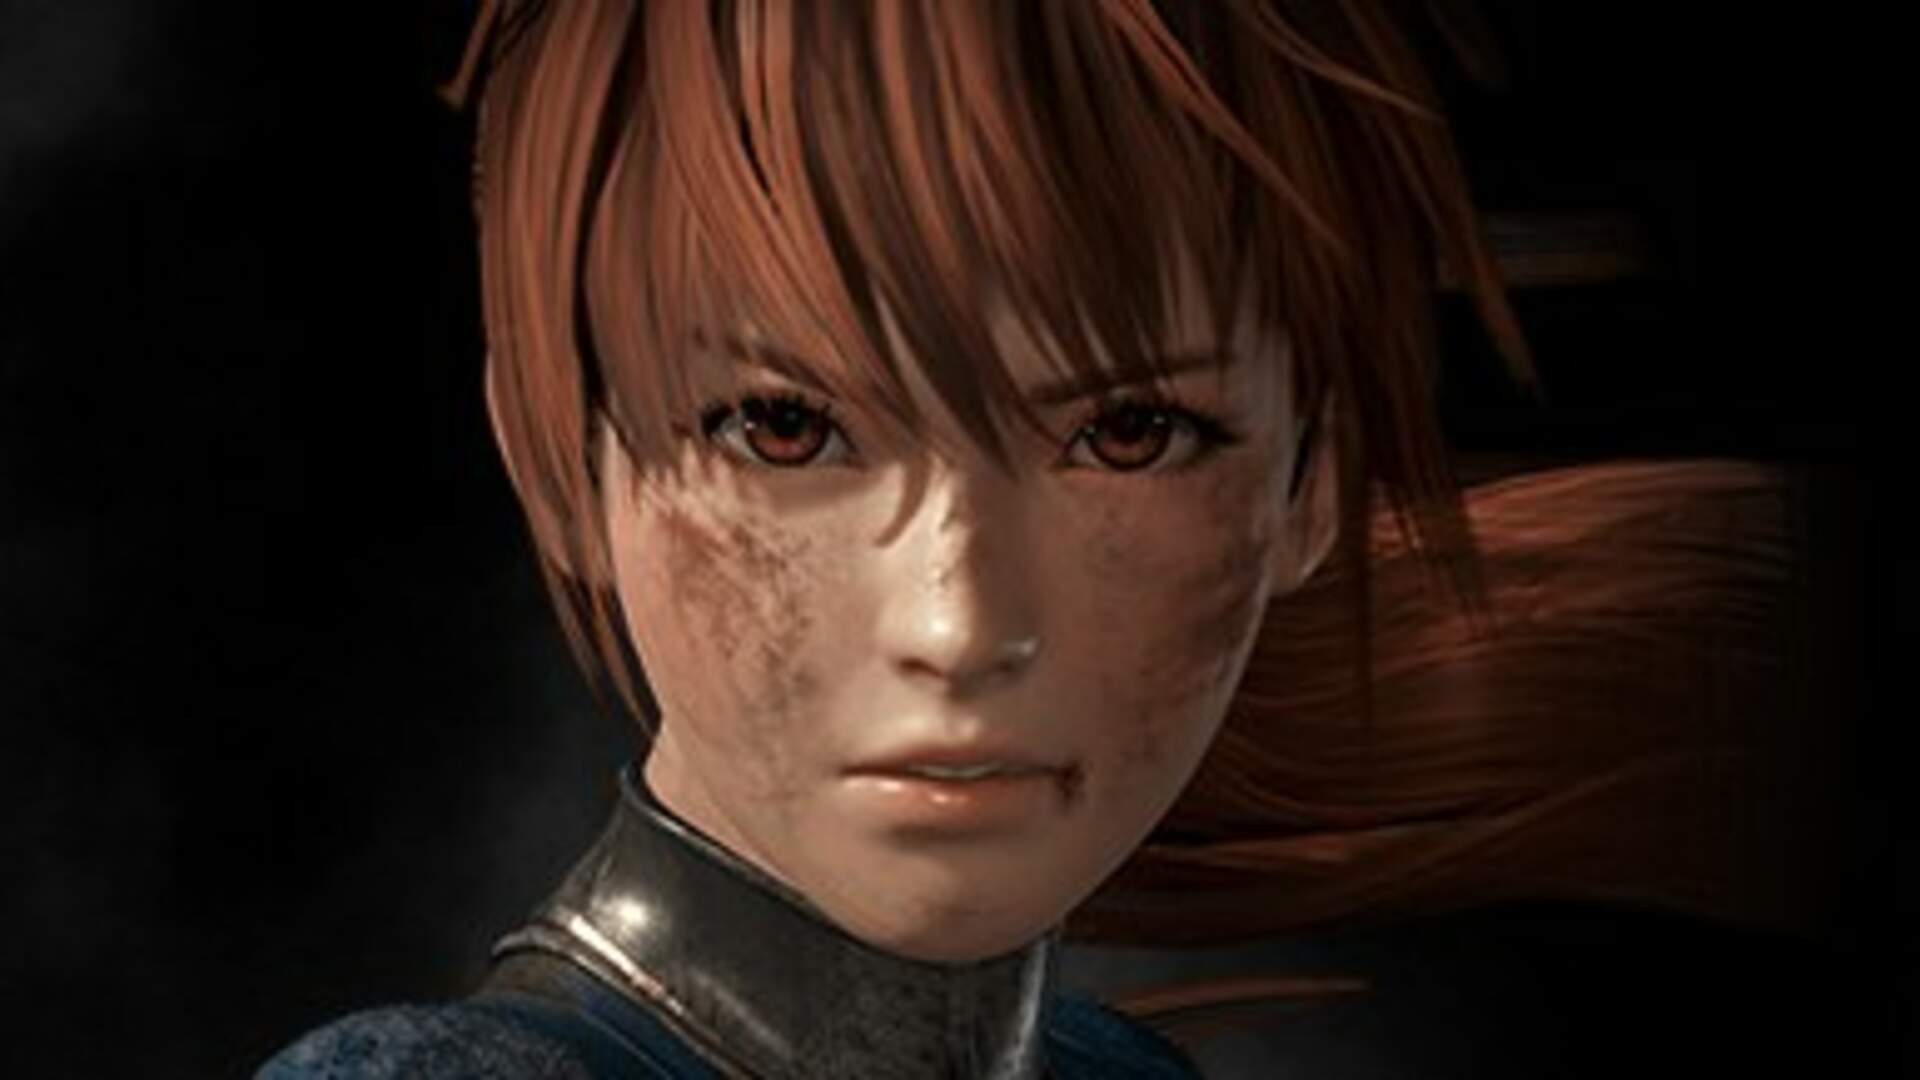 Dead or Alive 6 Release Date, Roster, Platforms, Trailer, Special Button - Everything We Know